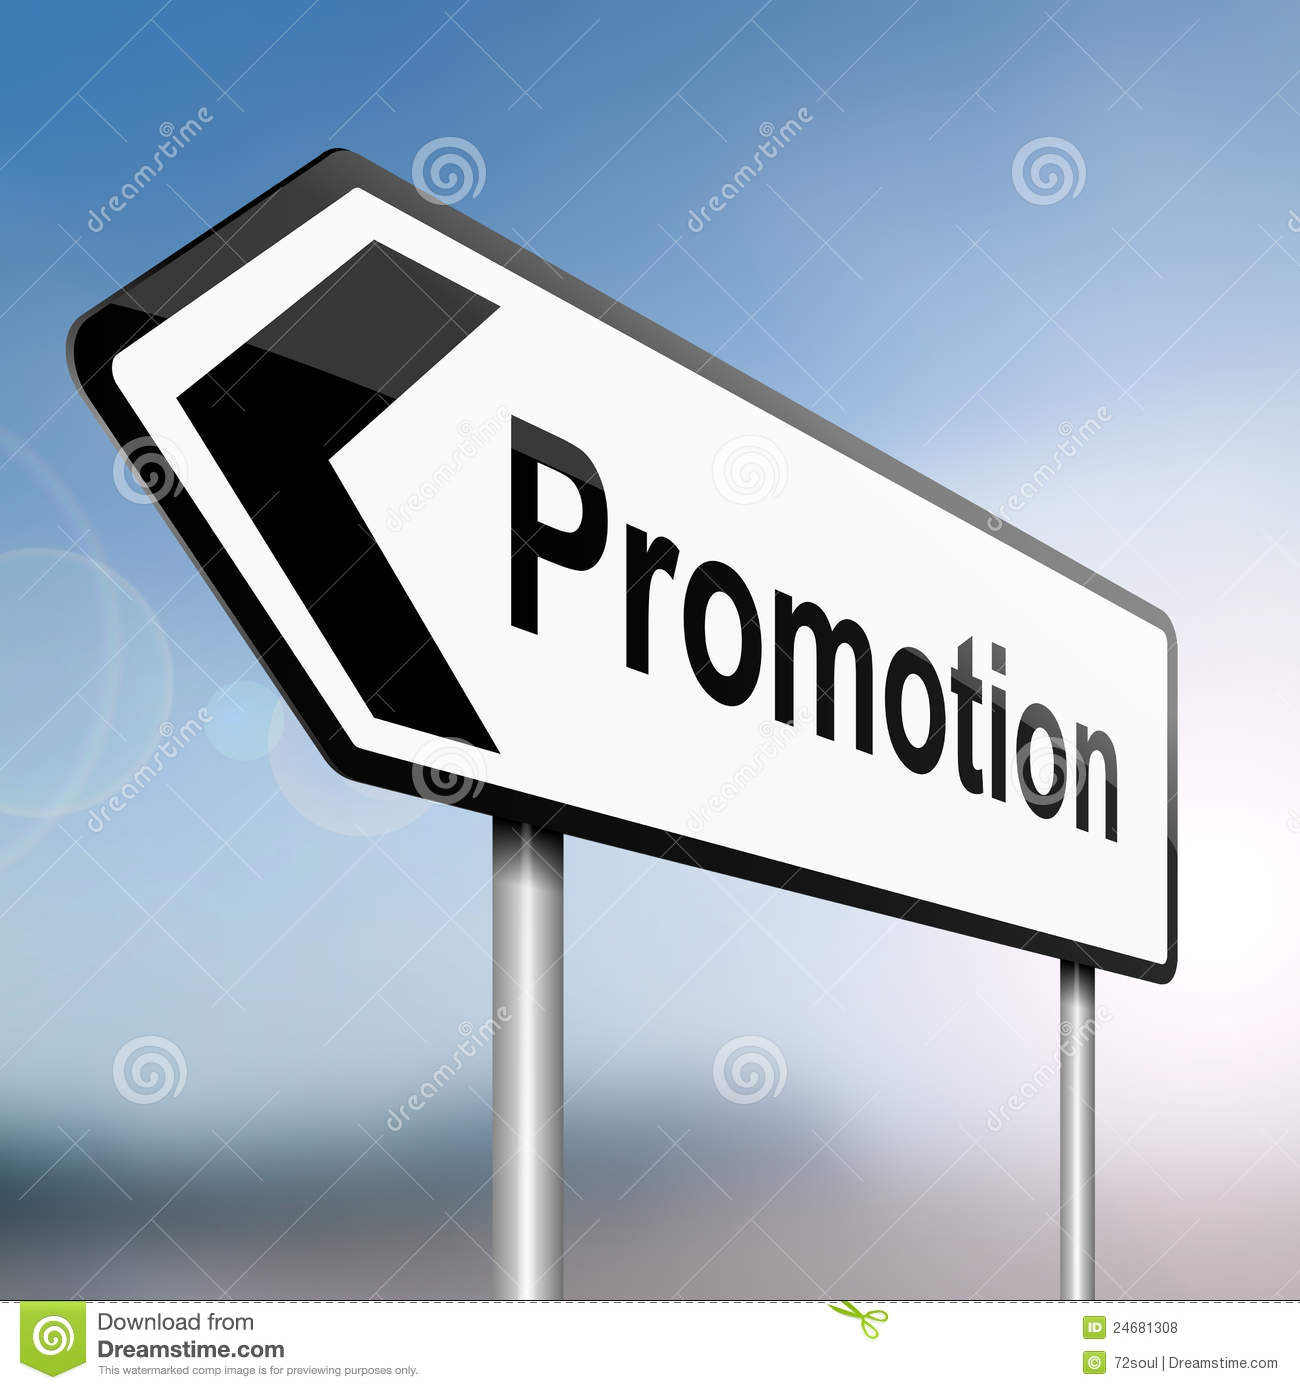 job promotion concept royalty stock photos image  job promotion concept